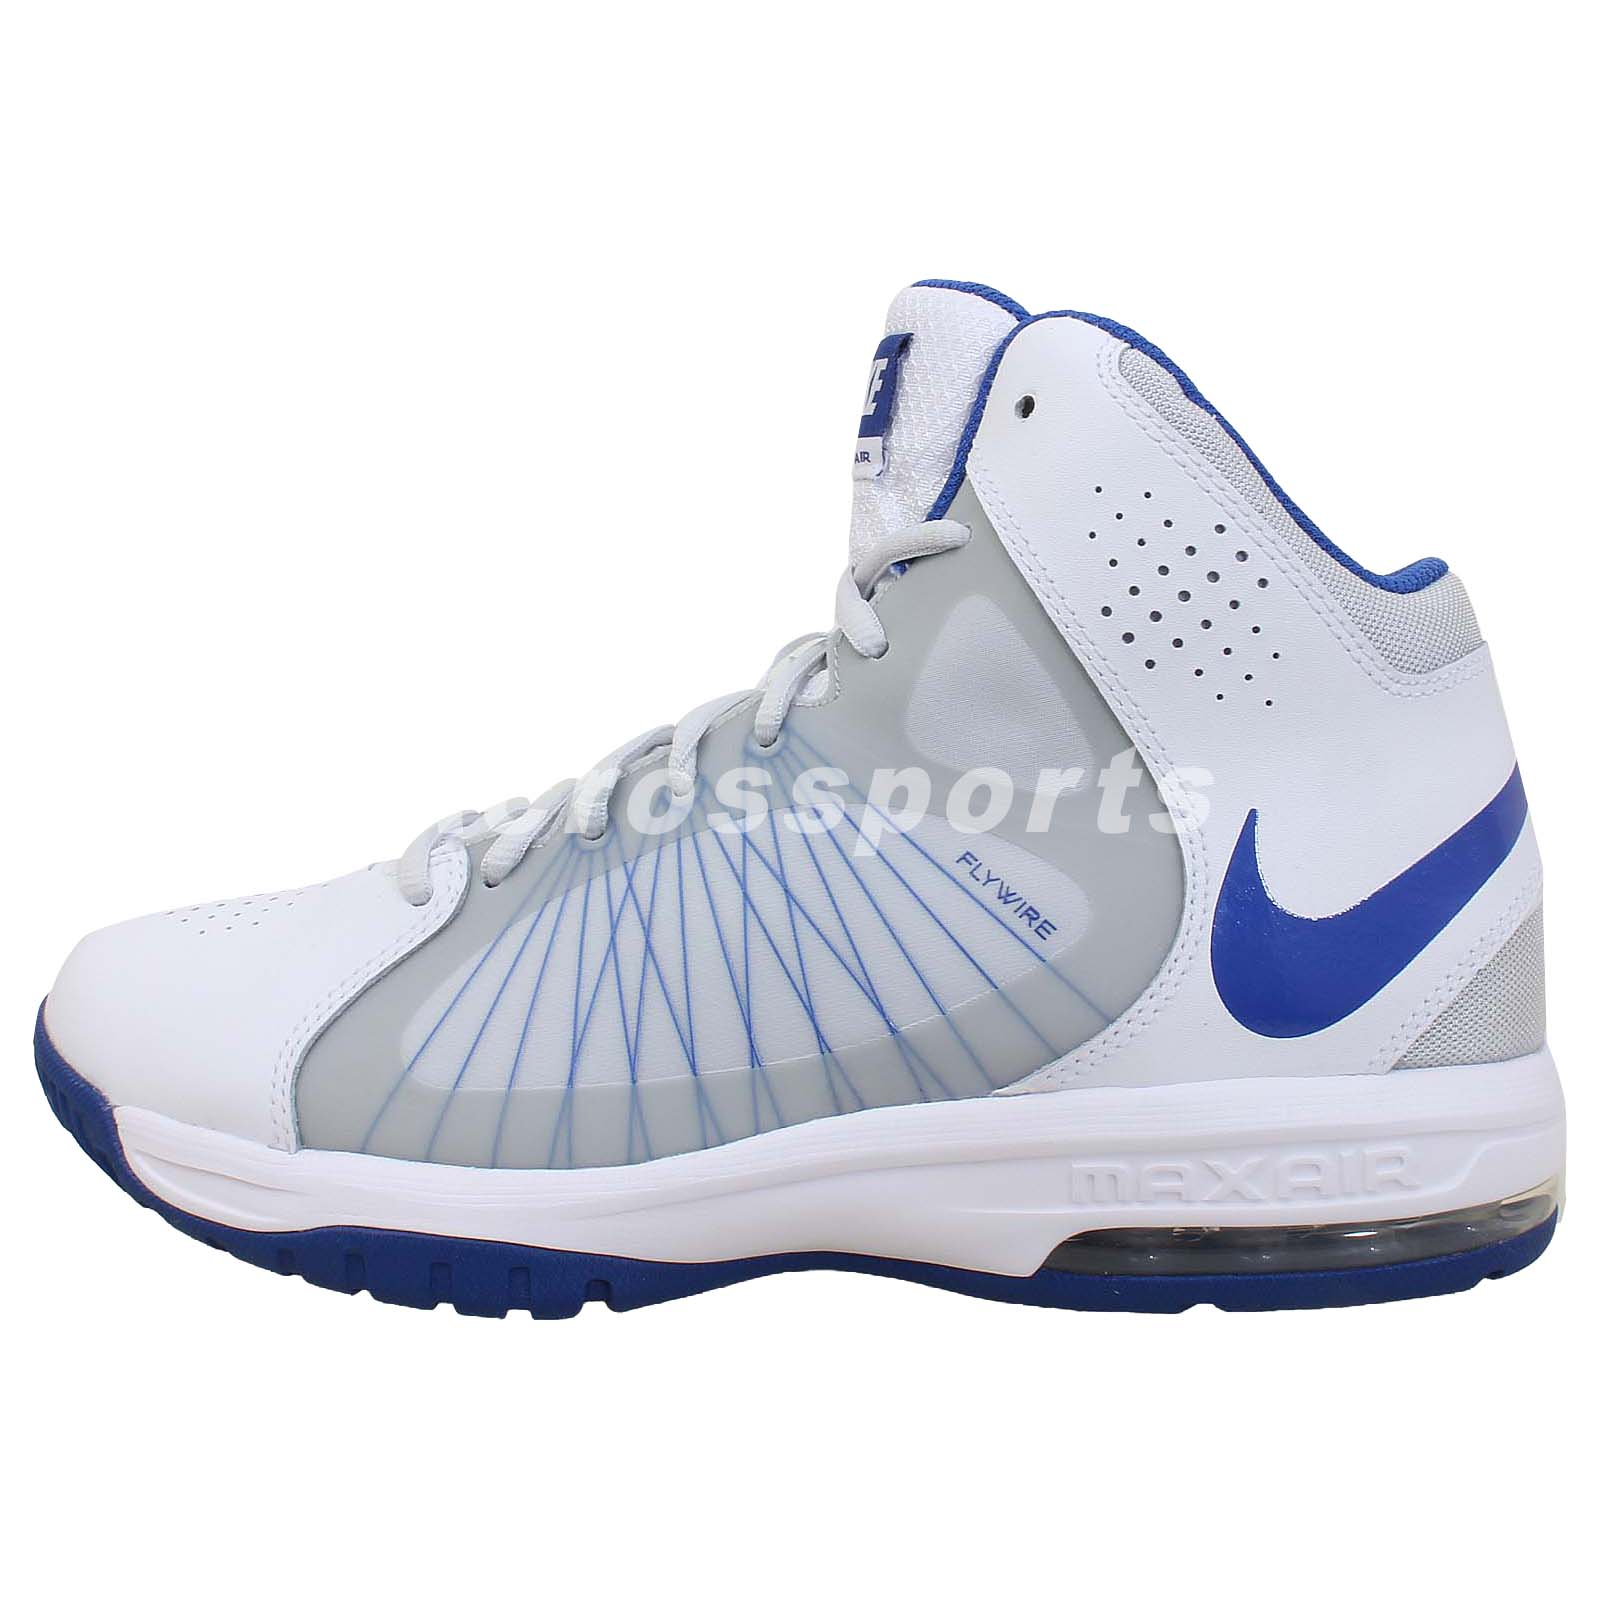 the best attitude 772a3 a6ea9 nike air max flywire basketball nike max air flywire basketball 104690602  Nike Mens Air Max Actualizer II ...